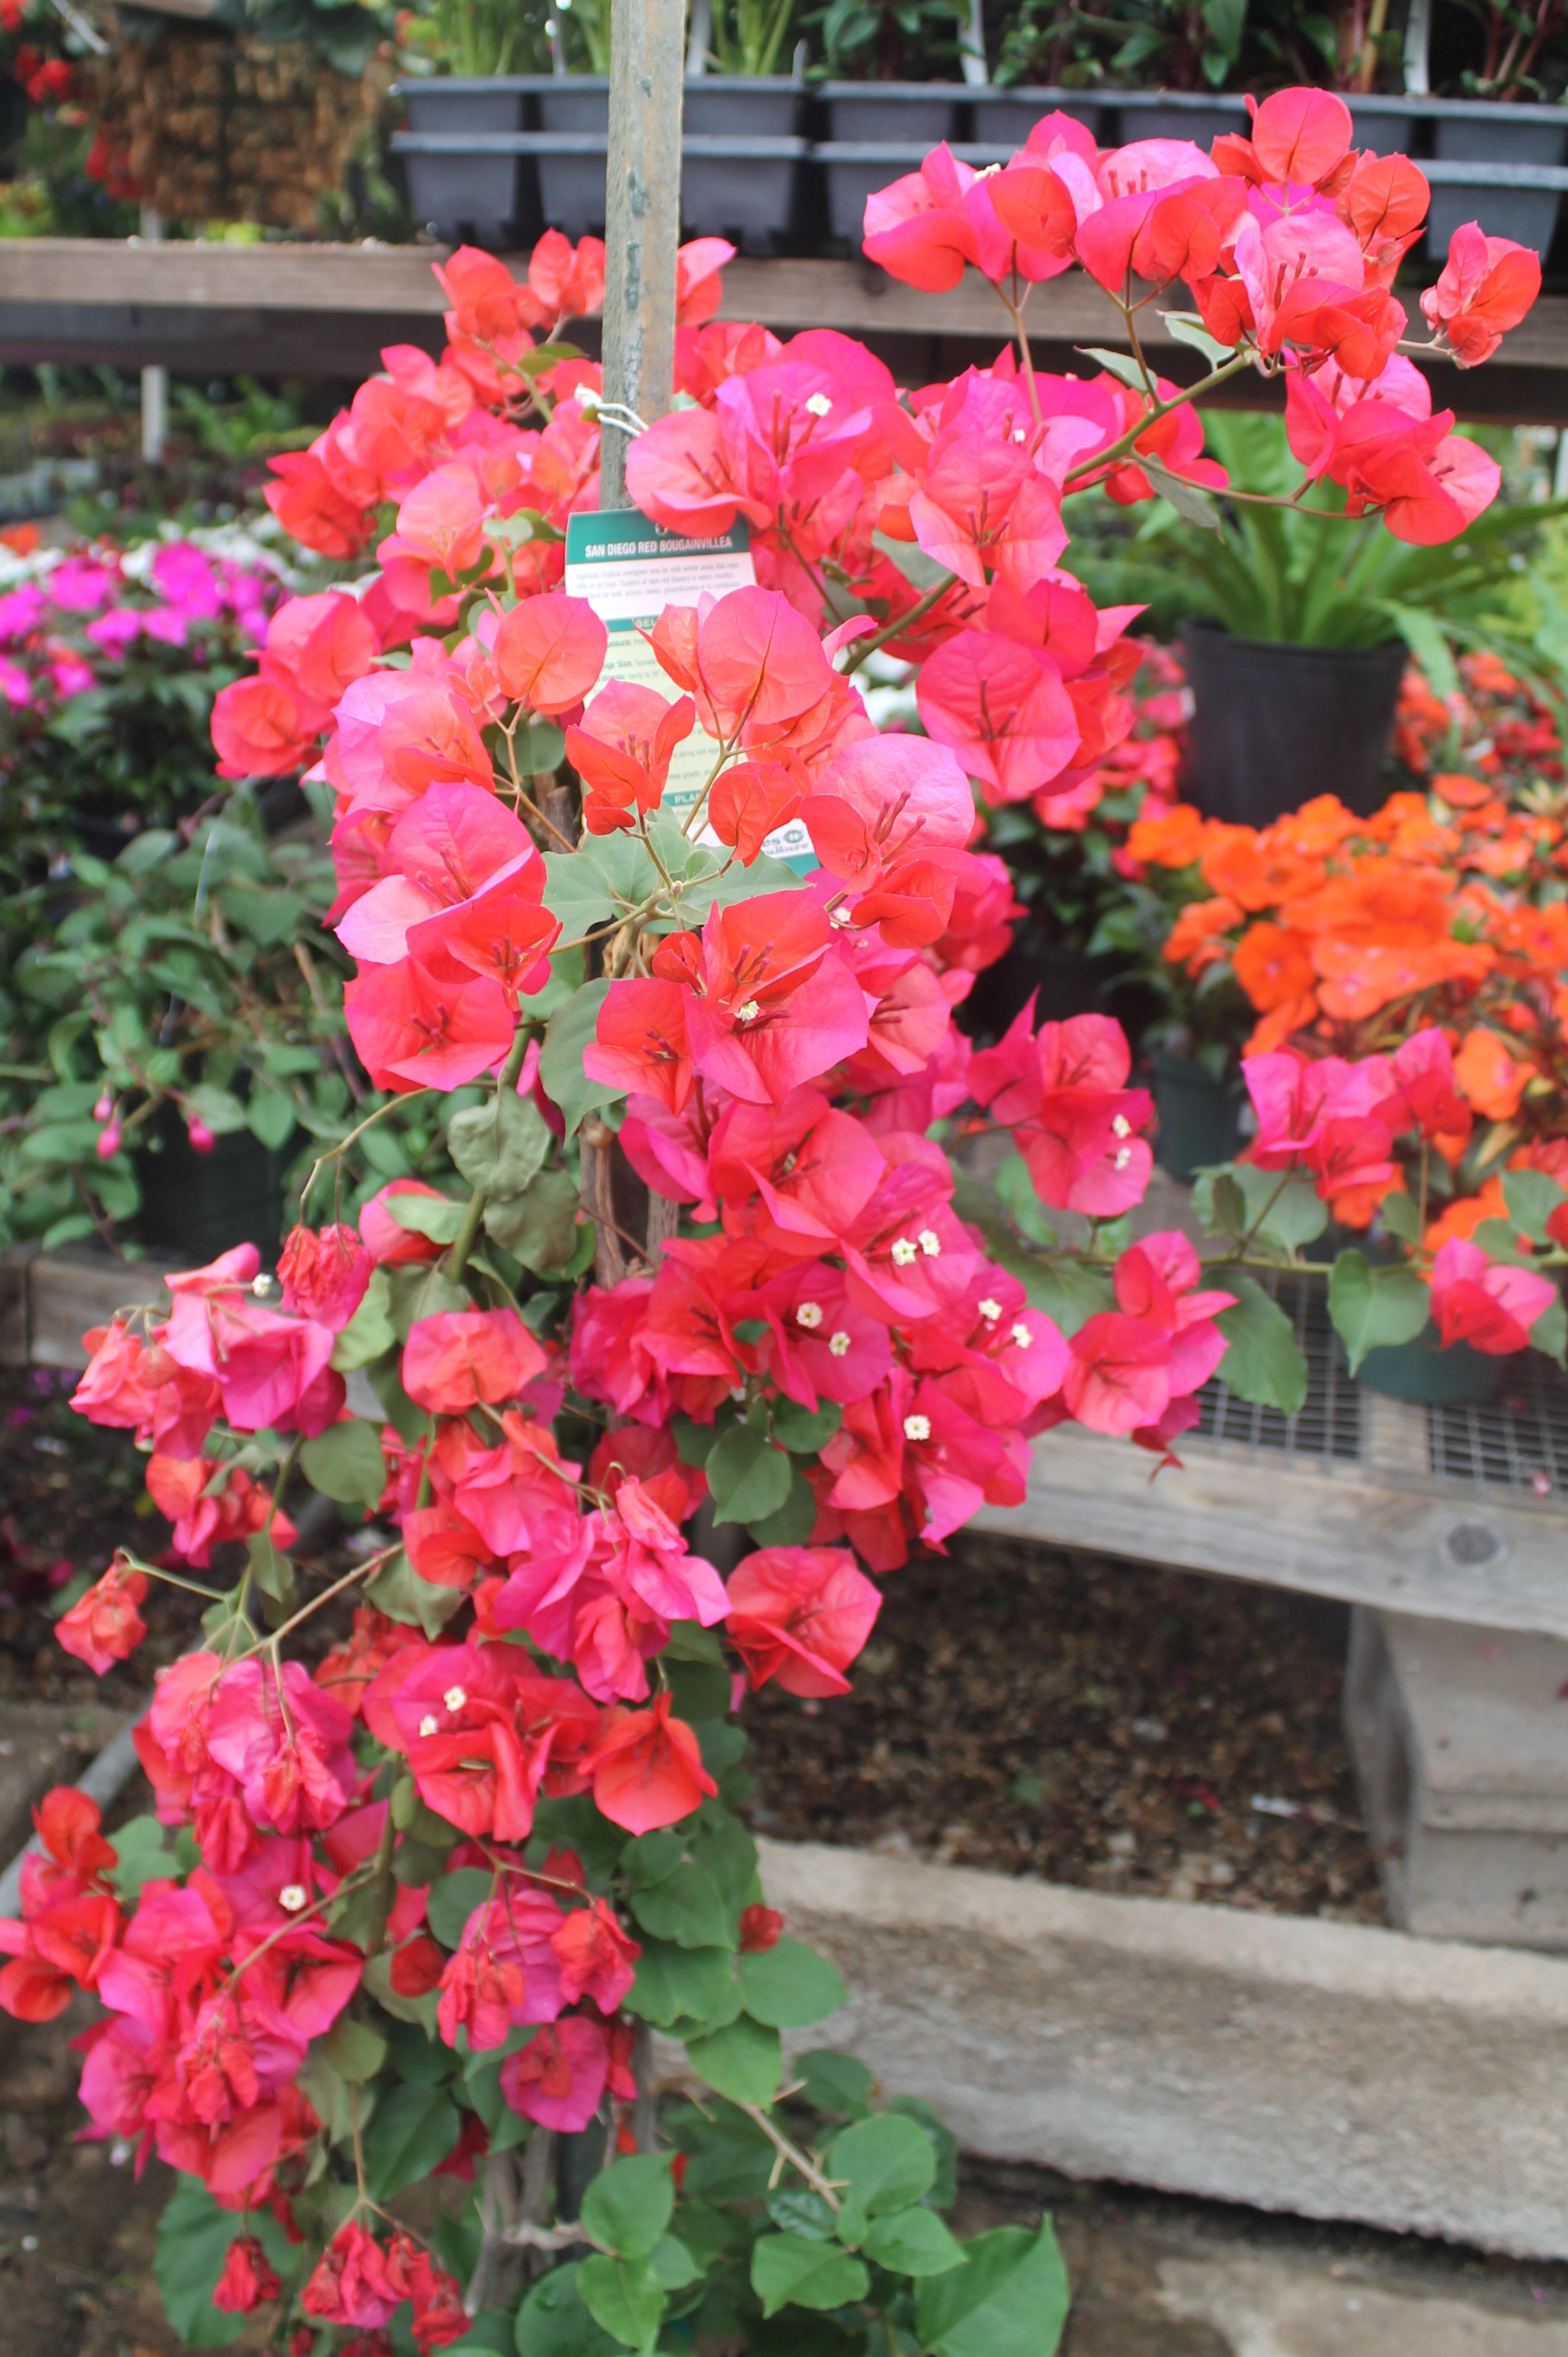 Tropical House Plants Denver on winter potted plants, winter shade plants, winter blooming plants, winter porch plants, winter container plants, winter hibiscus, winter yard plants, winter deck plants, winter perennial plants, winter interest plants, winter flowering plants, winter fragrant plants, winter house landscaping, winter planter plants, winter house art, winter hardy plants, winter outdoor plants, winter house cookies, great winter plants, winter patio plants,